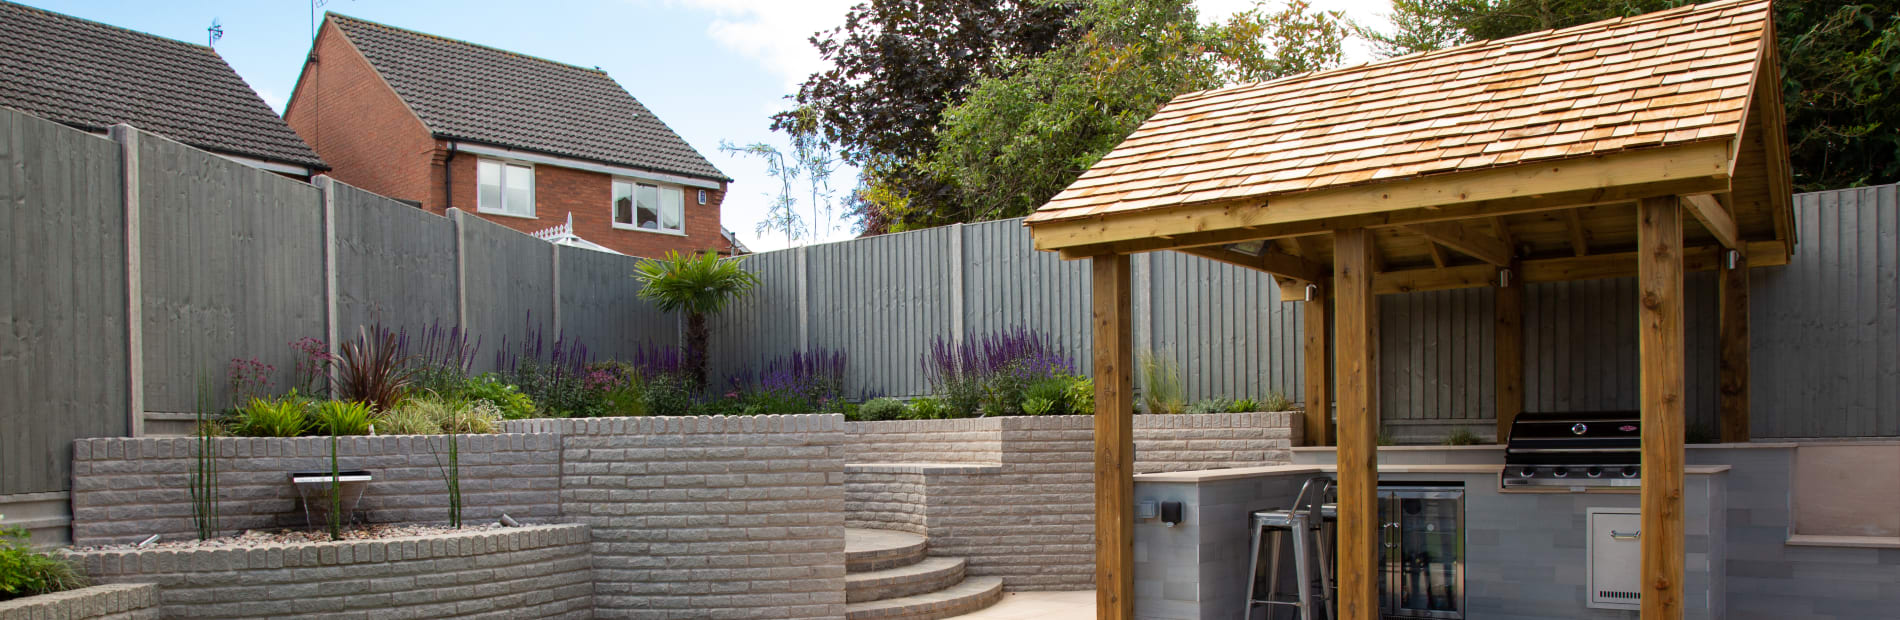 Outdoor kitchen with wooden canopy